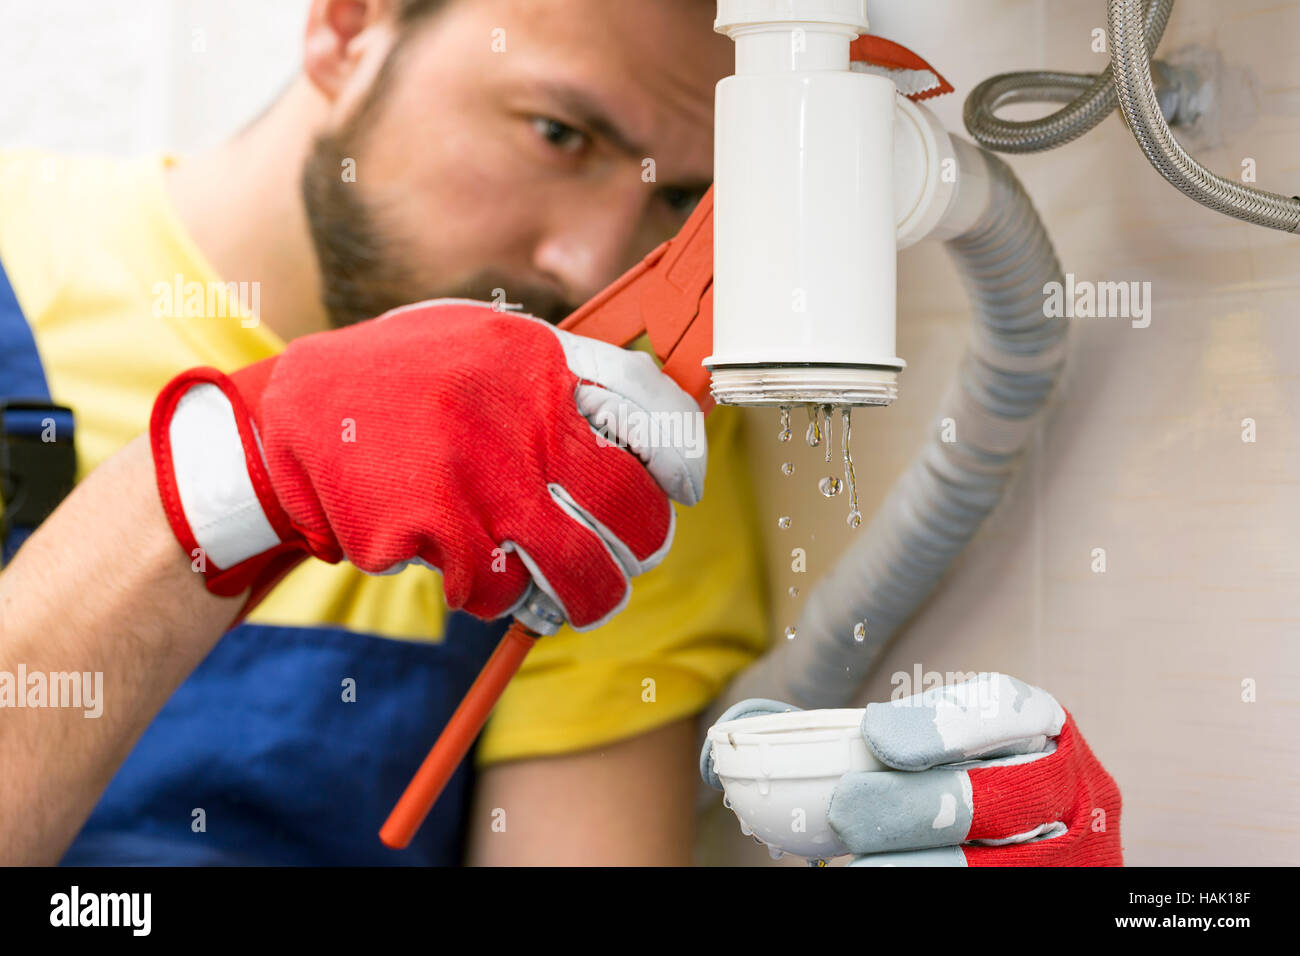 plumber fixing the sink siphon in a bathroom or kitchen - Stock Image